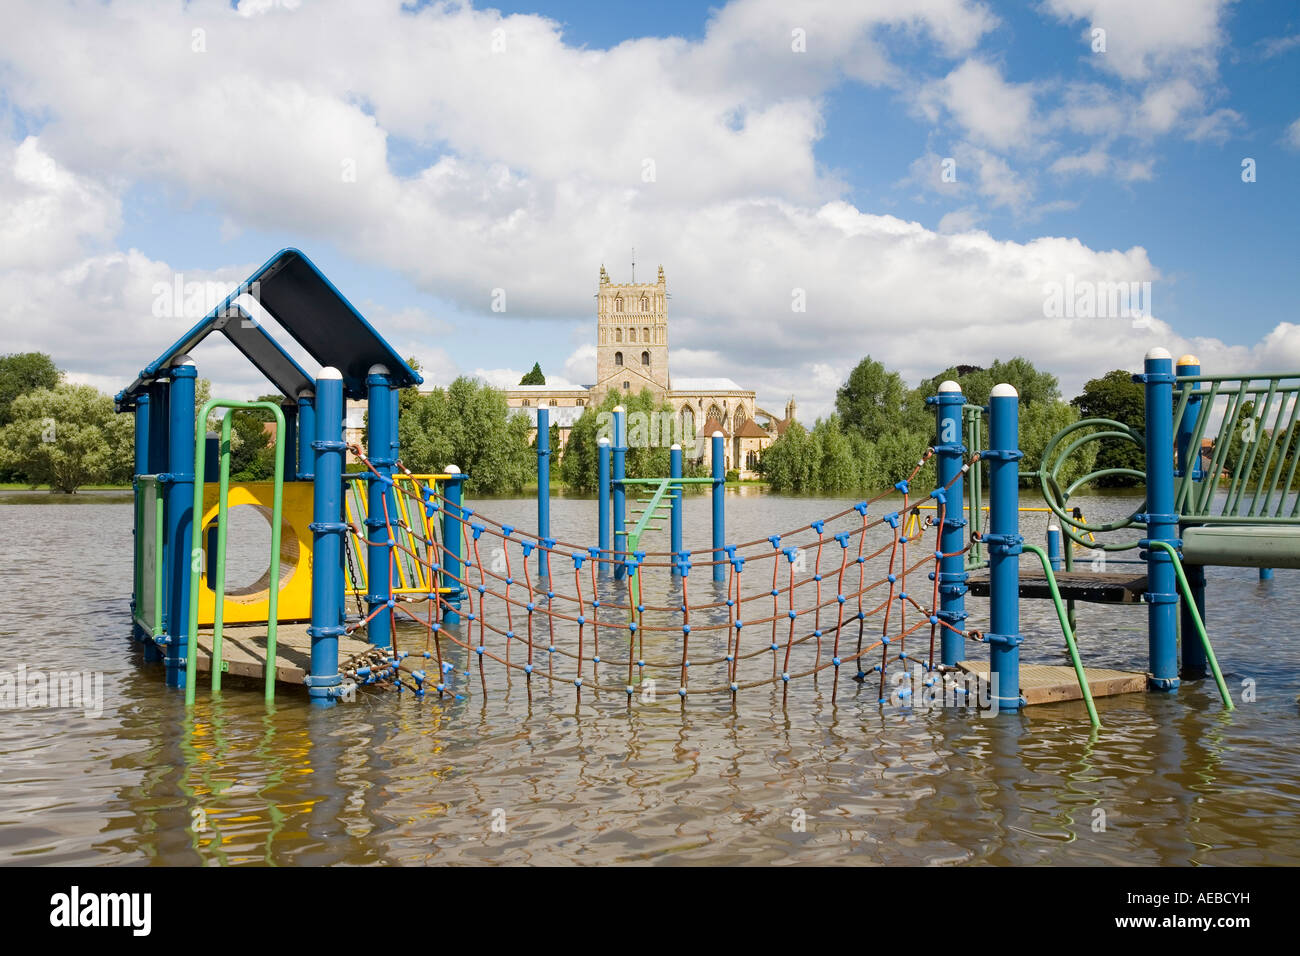 a childs playground flooded during  the Tewkesbury floods - Stock Image